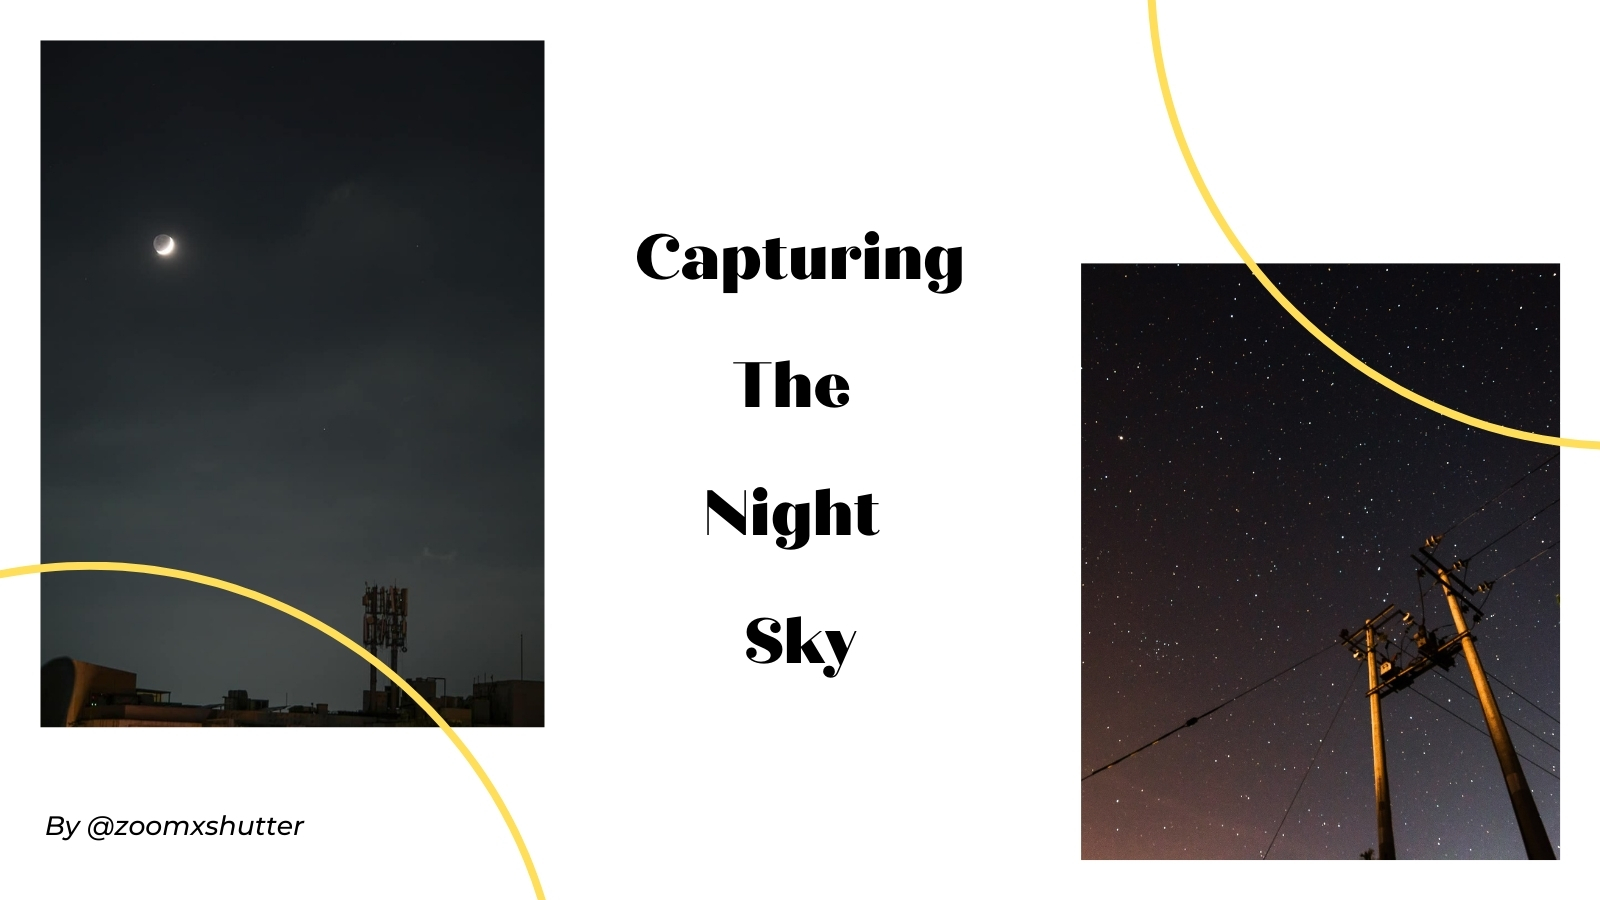 Capturing the Night Sky - Photography Challenge